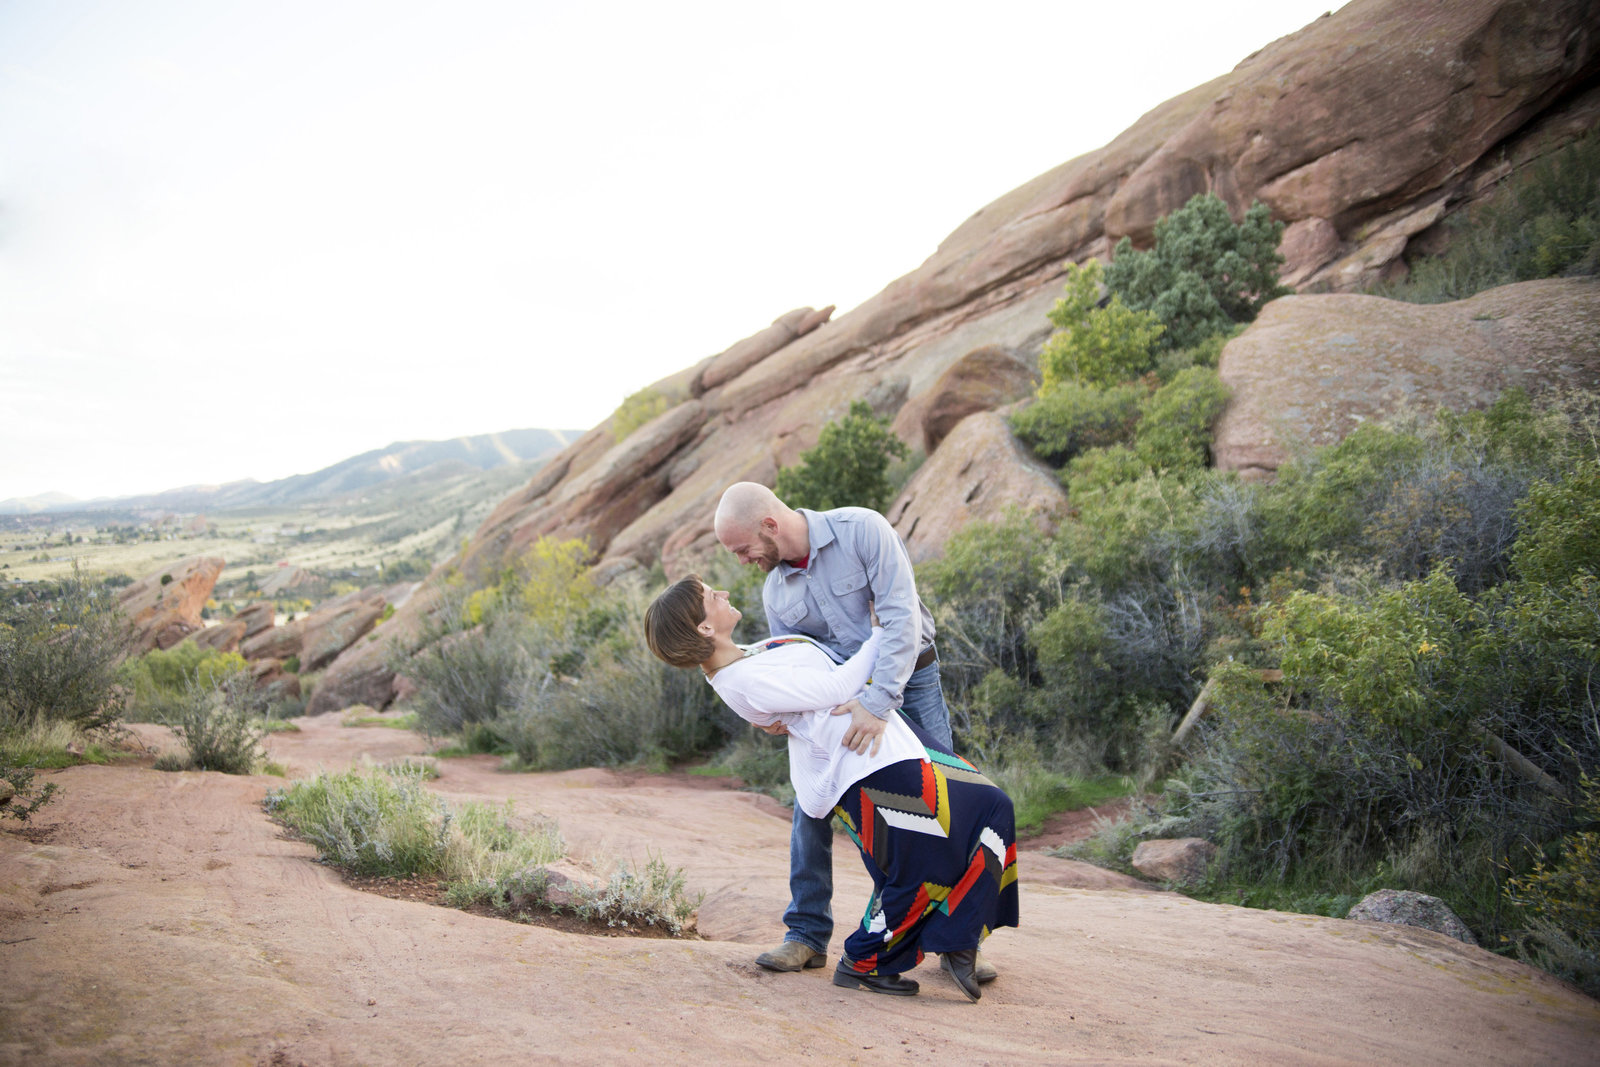 Jessi-And-Zach-Photography-Colorado-Wedding-Photographer-Nevada-Wedding-Photographer-Nevada-Engagement-Photographer_25